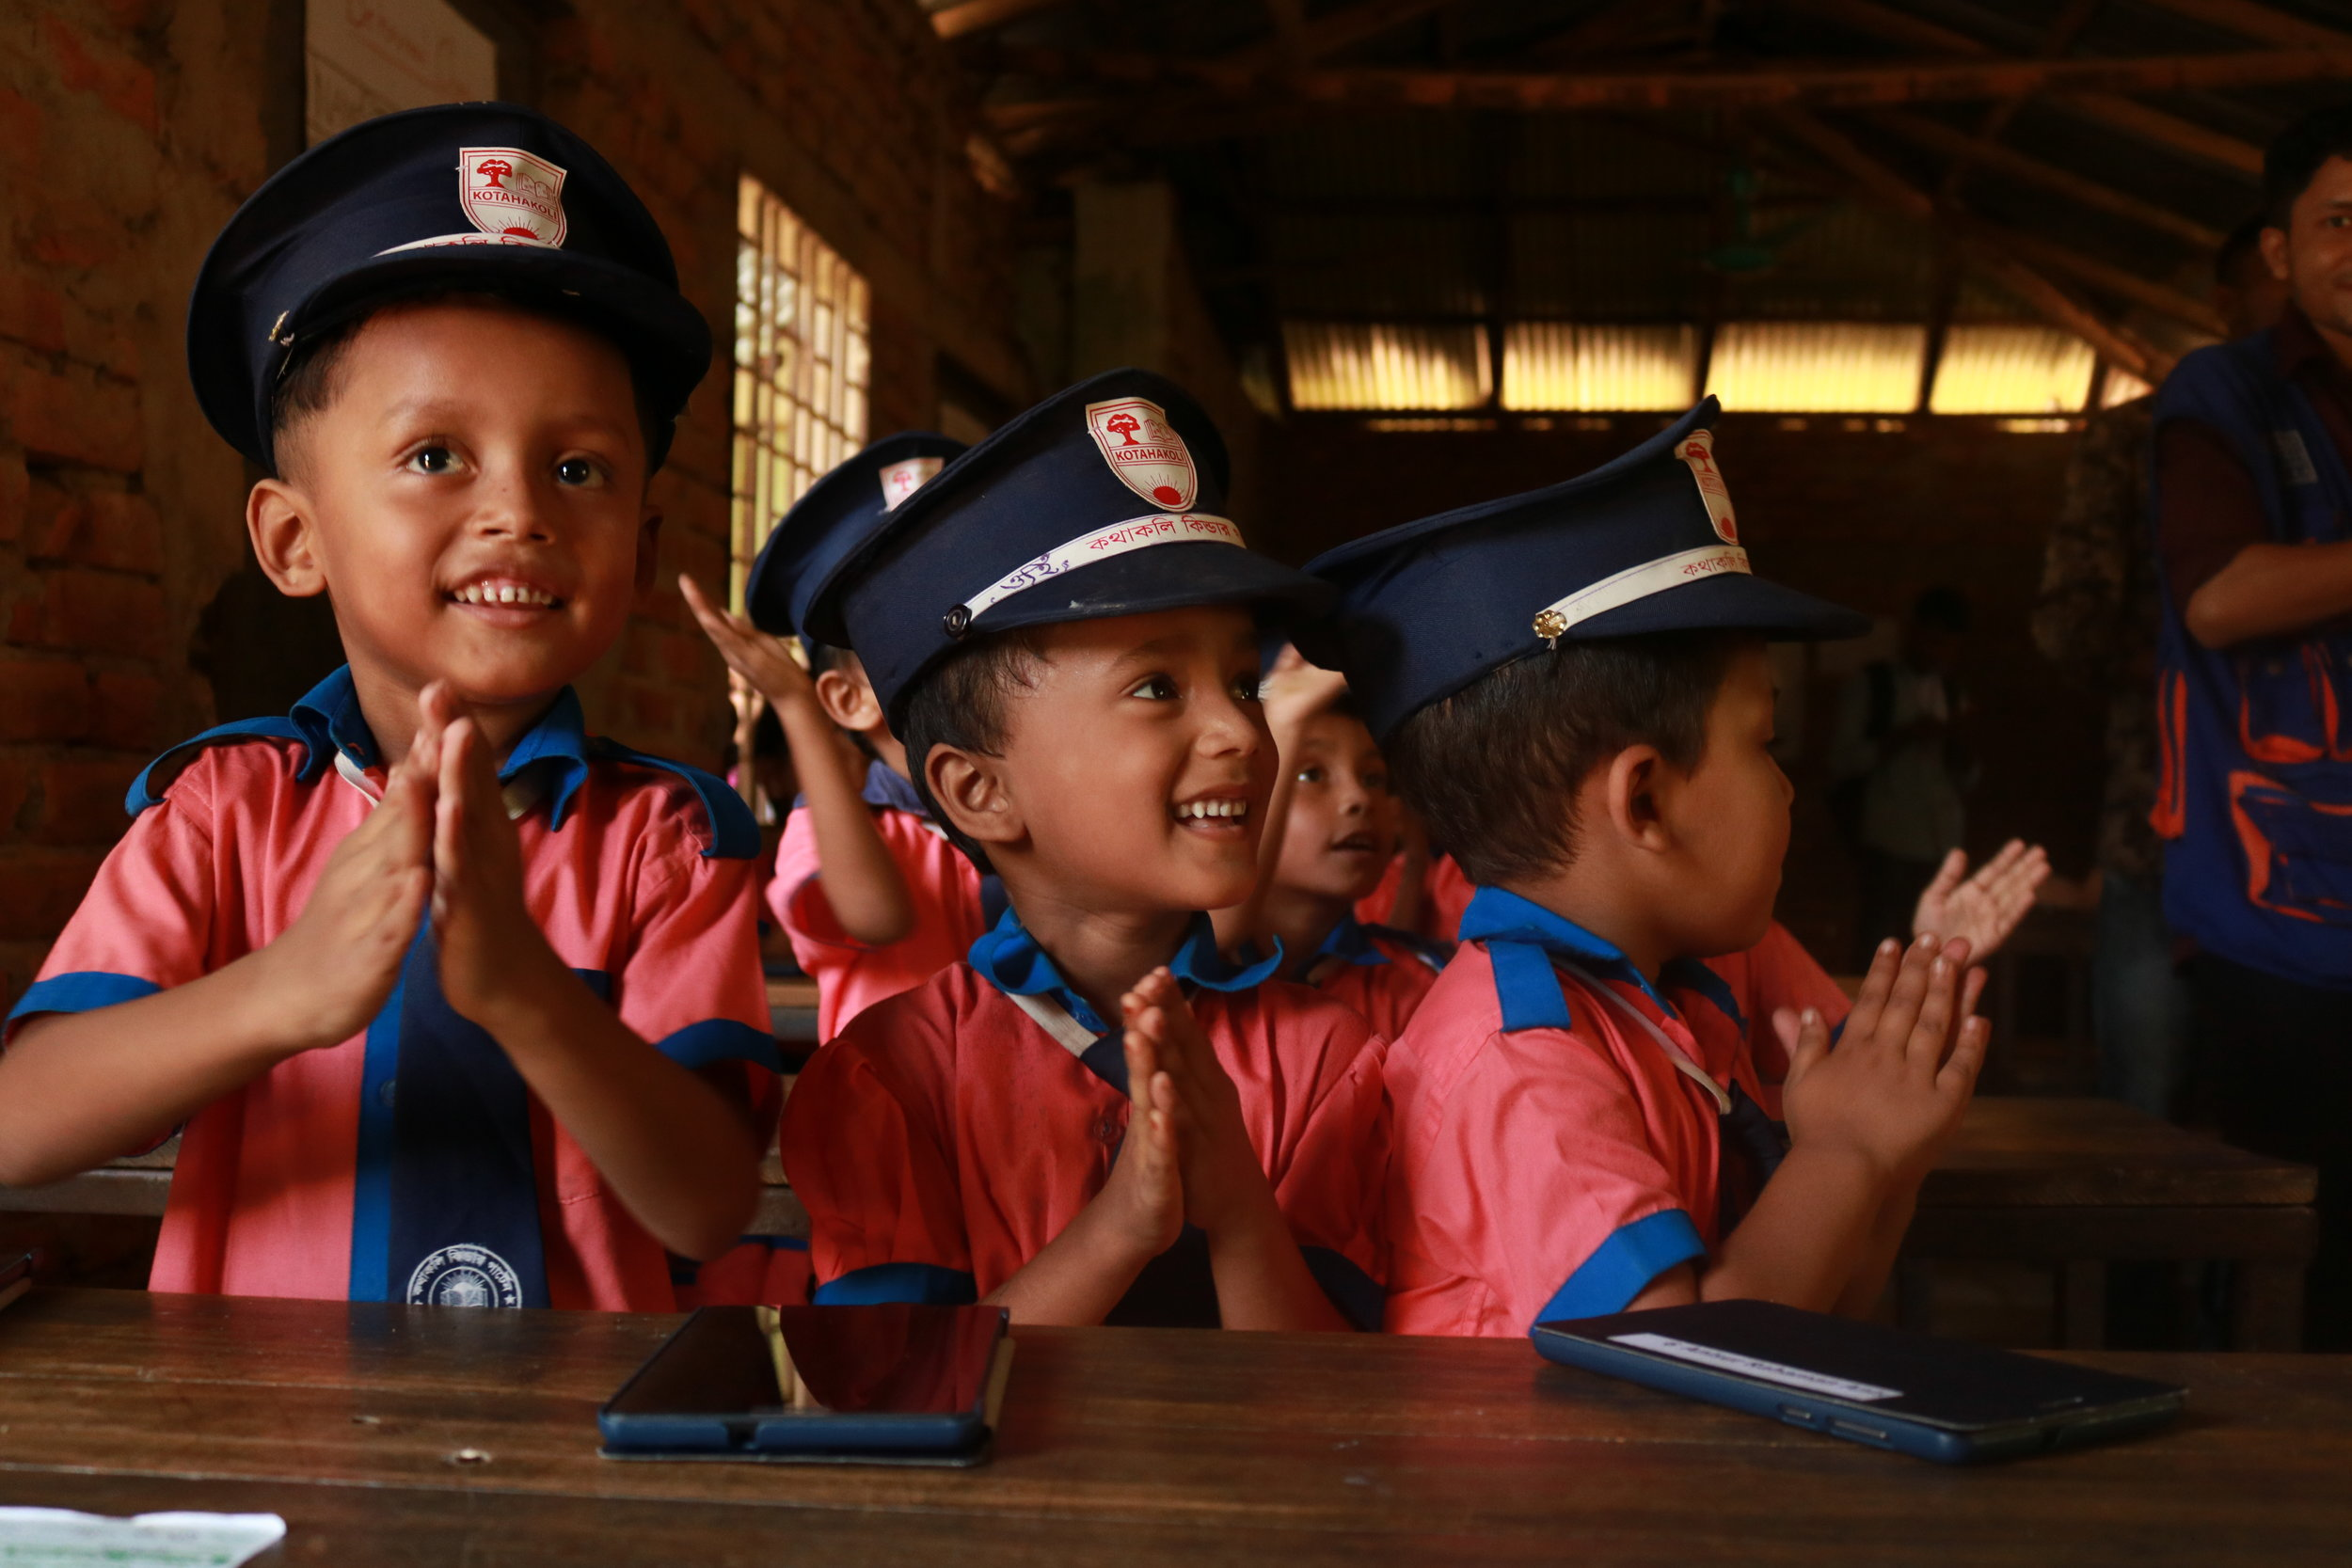 Students from the host community looking sharp in their uniforms